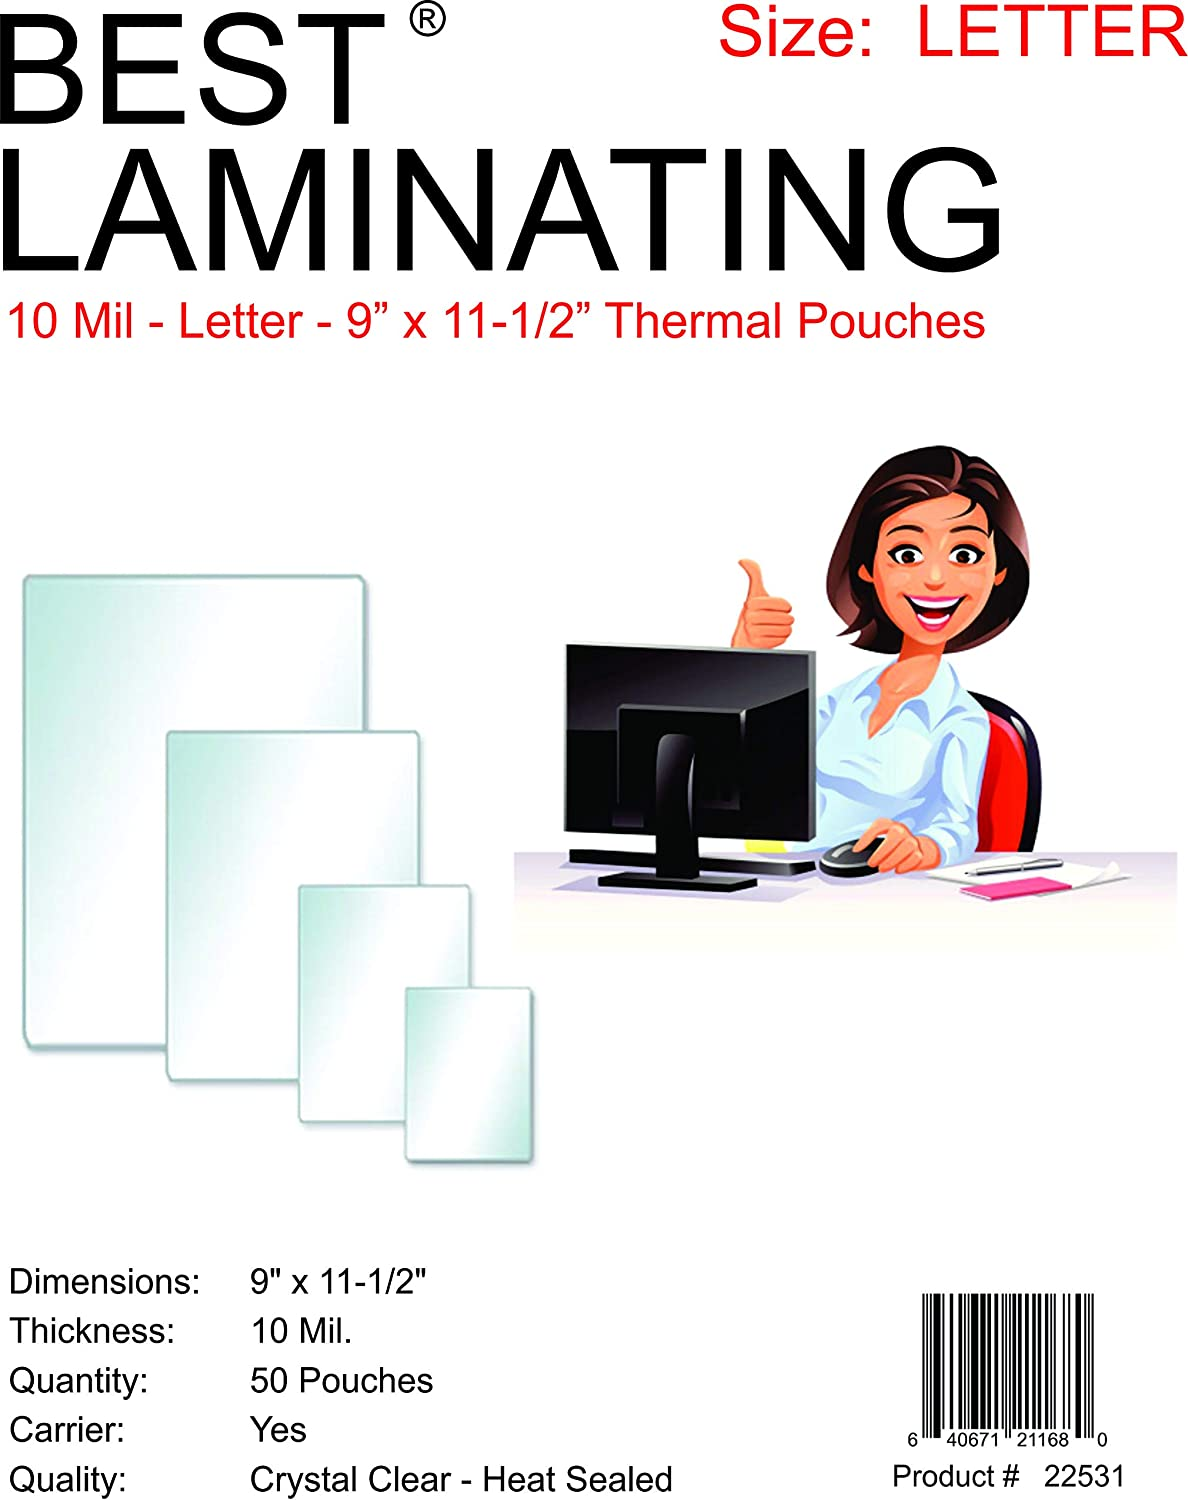 22531 Best Laminating 9 X 11.5 10 Mil Clear Letter Size Thermal Laminating Pouches Qty 50 QDOS Inc